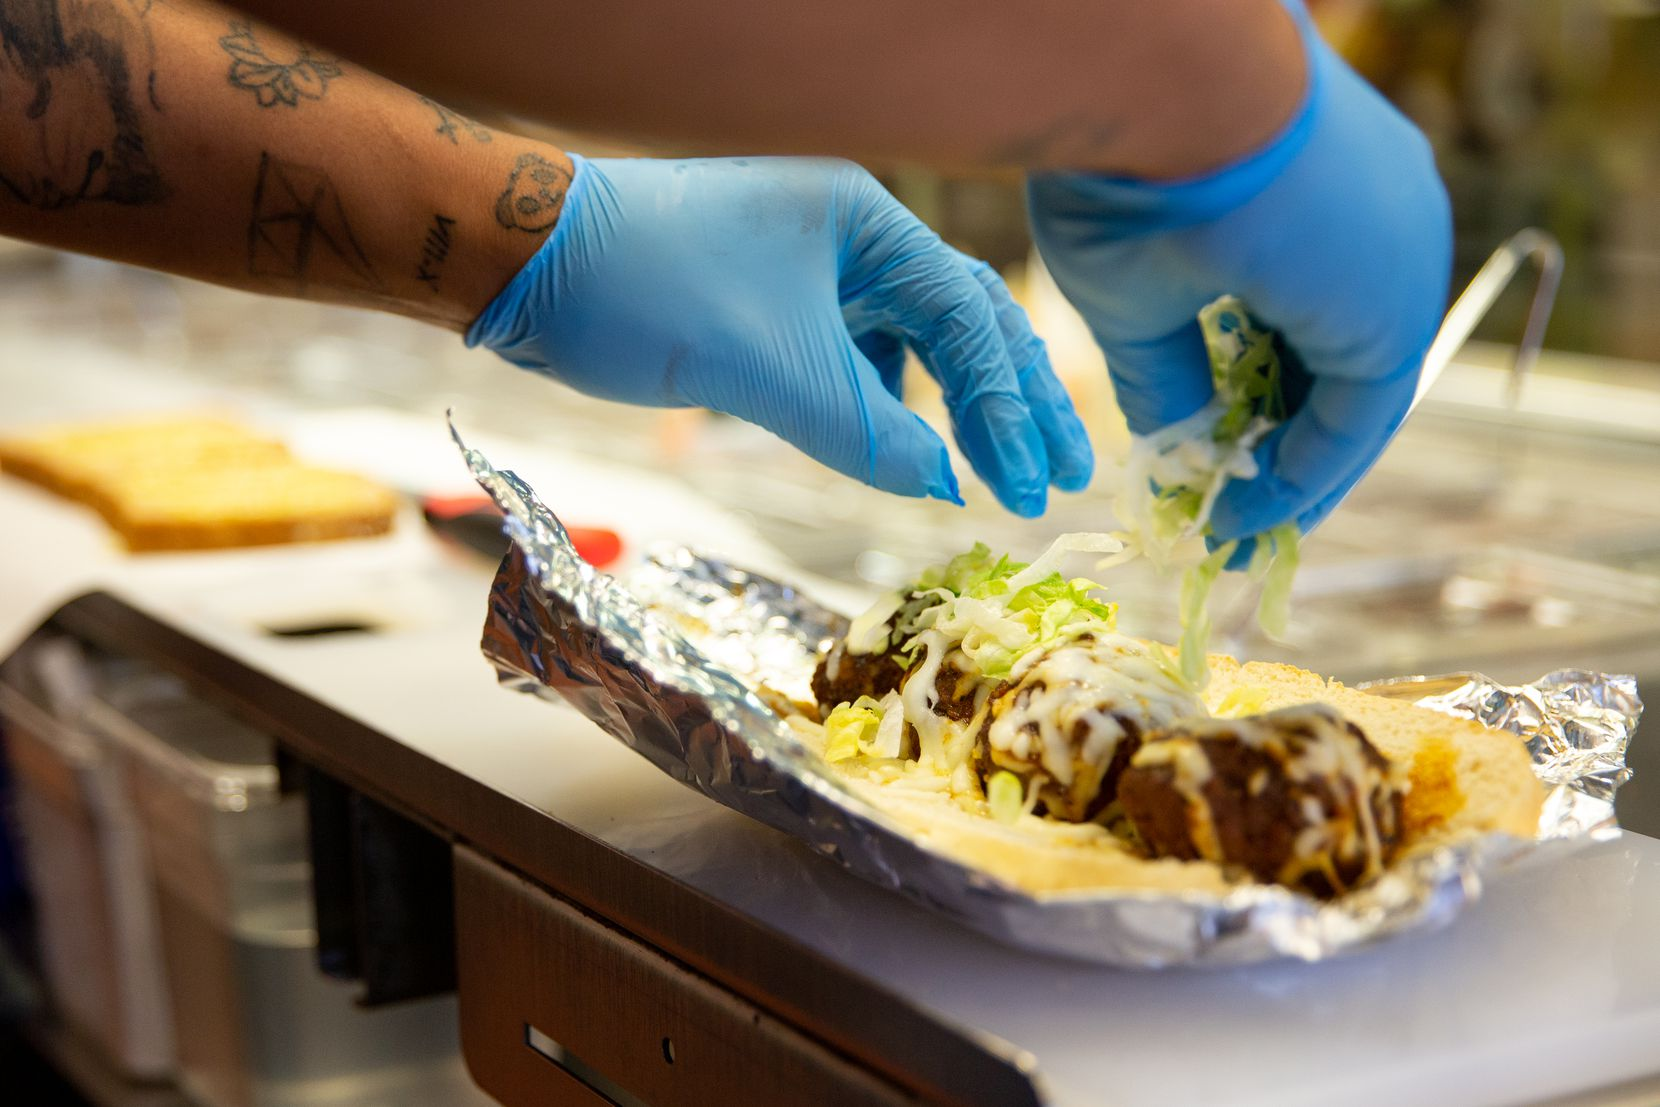 An employee sprinkles lettuce onto a meatball sub at Patriot Sandwich Company in Denton.